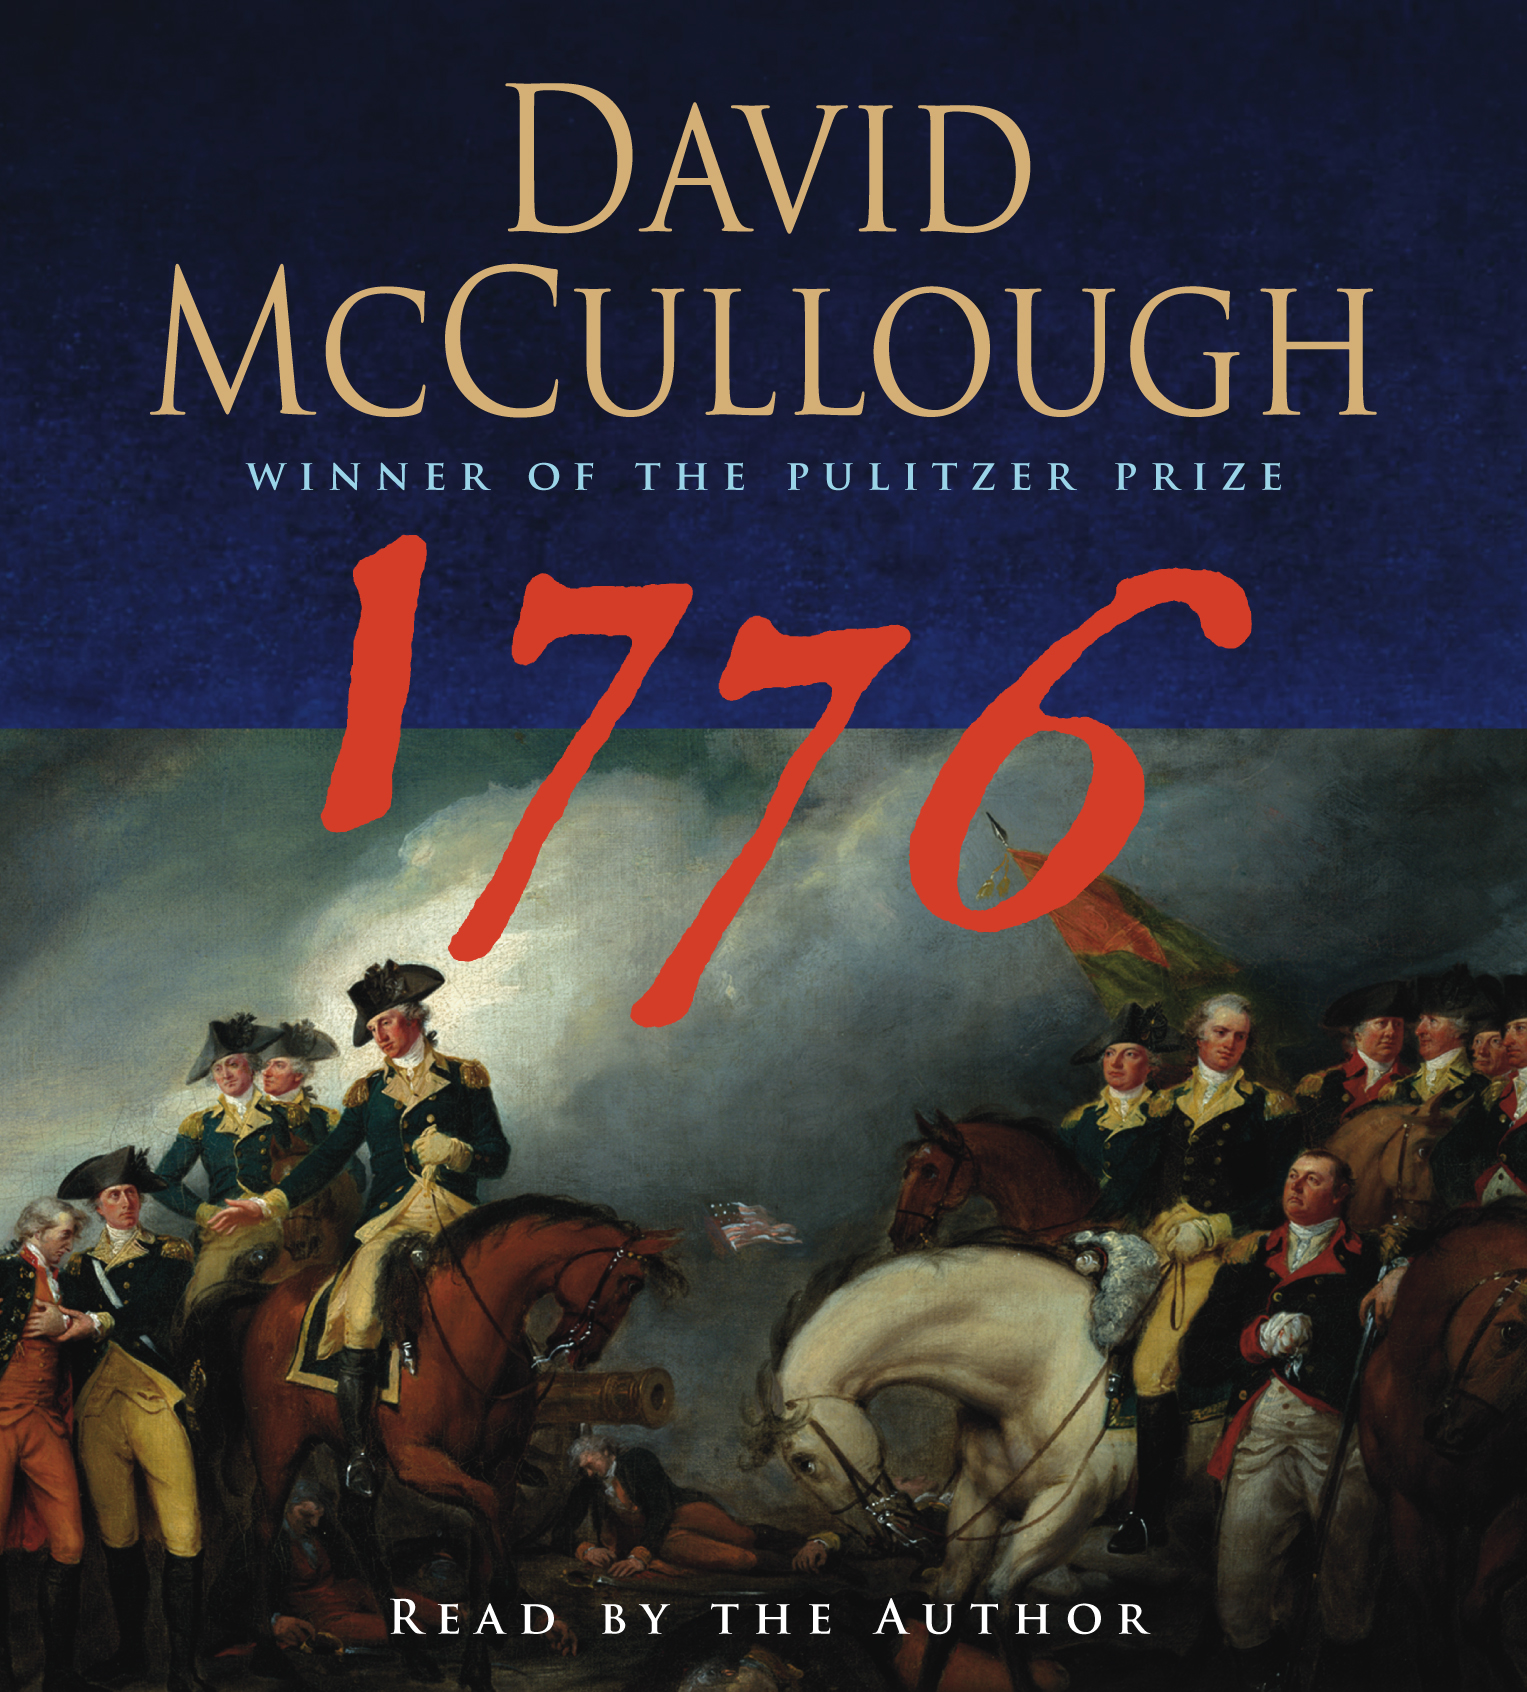 david mcculloughs 1776 essay Characters and leaaders shine in mccullough's 1776 characters and leaders are the goals of mccullough in 1776 even weather and degradation play roles in this 6 page essay on mccullough's.